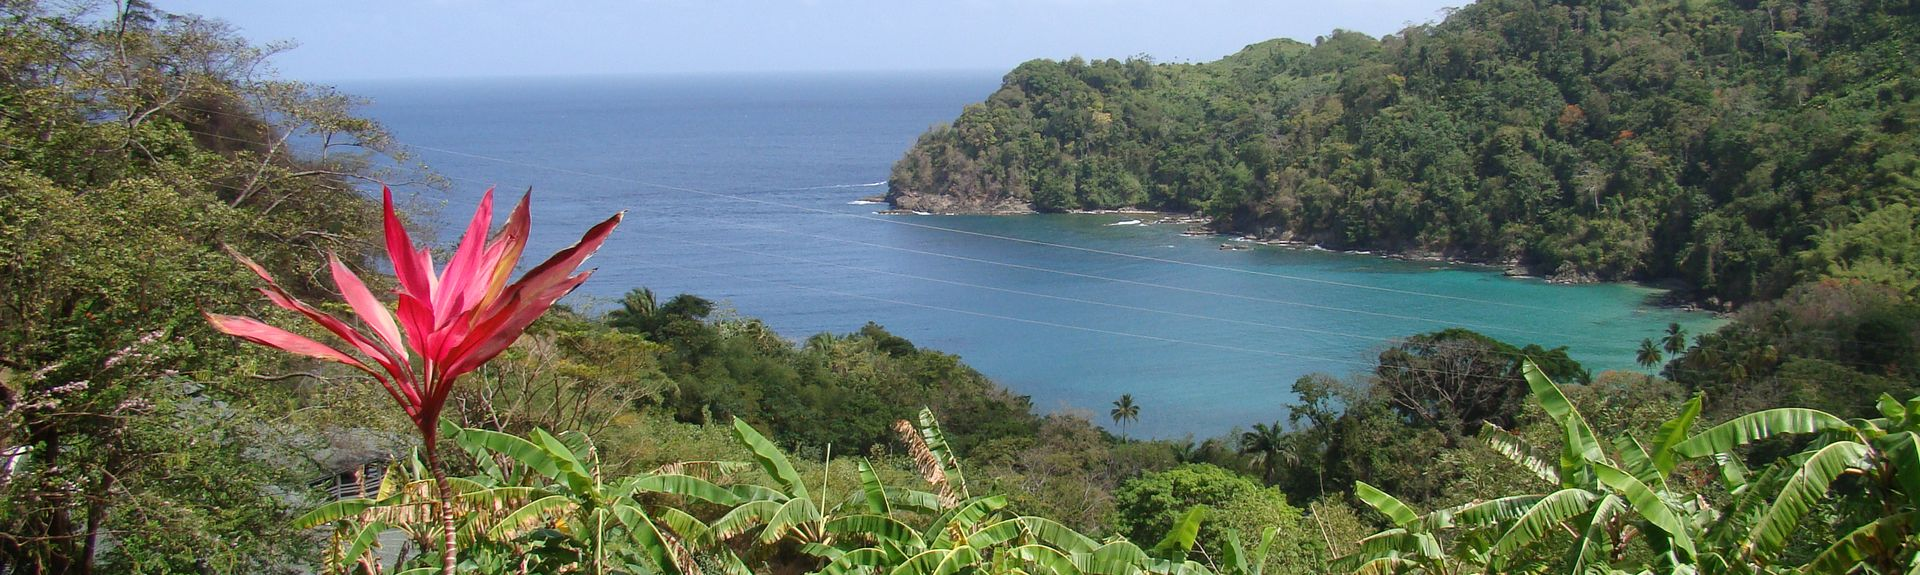 Store Bay, Crown Point, Tobago Ocidental, Trinidad e Tobago